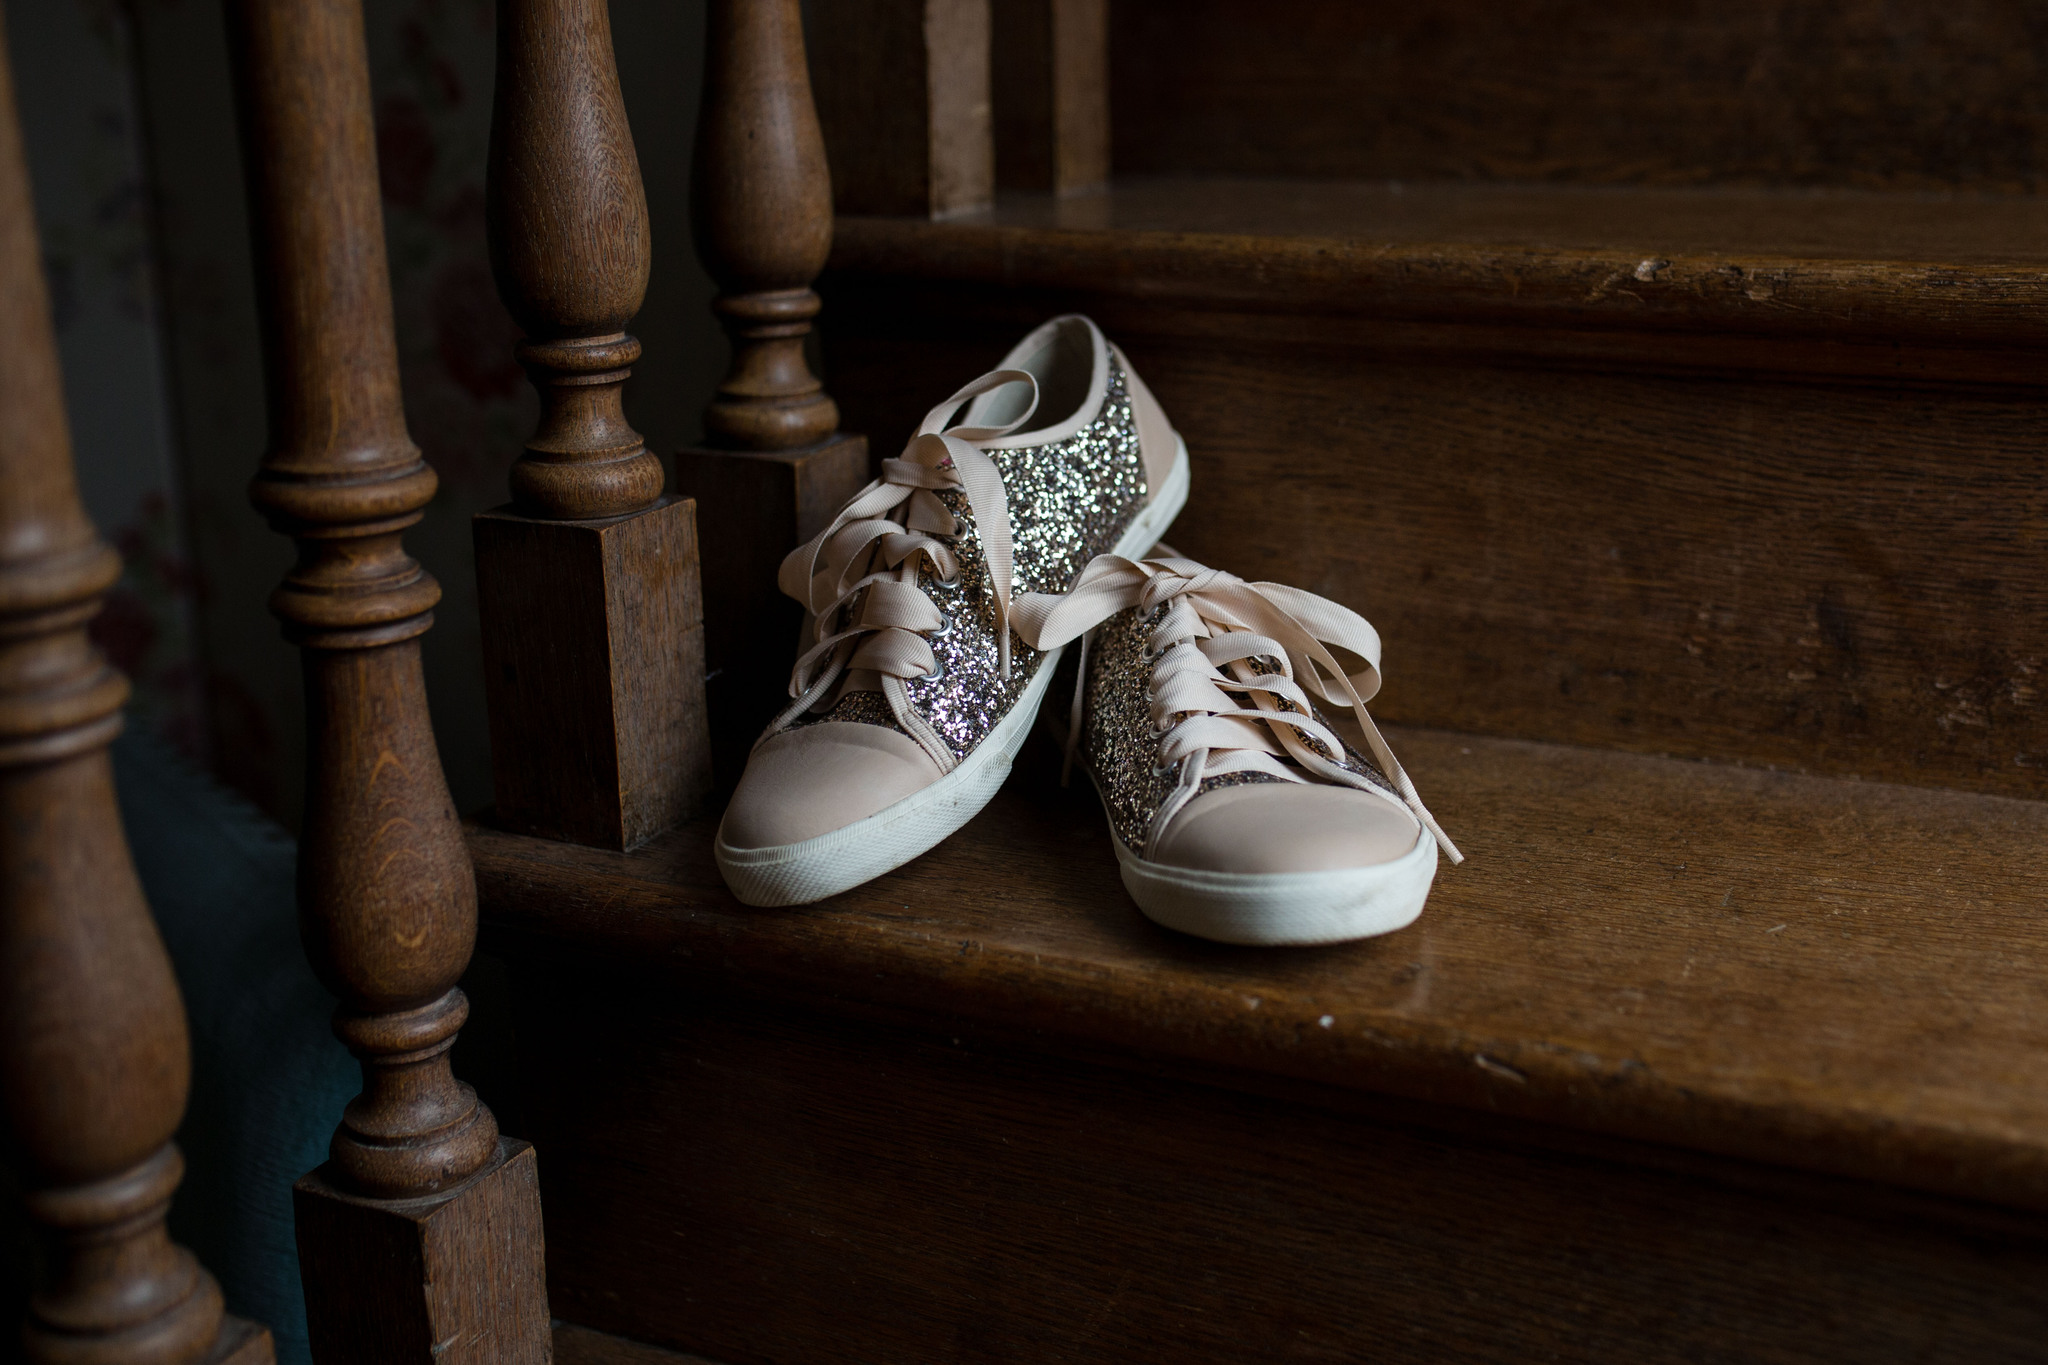 Converse wedding shoes rose gold with glitter